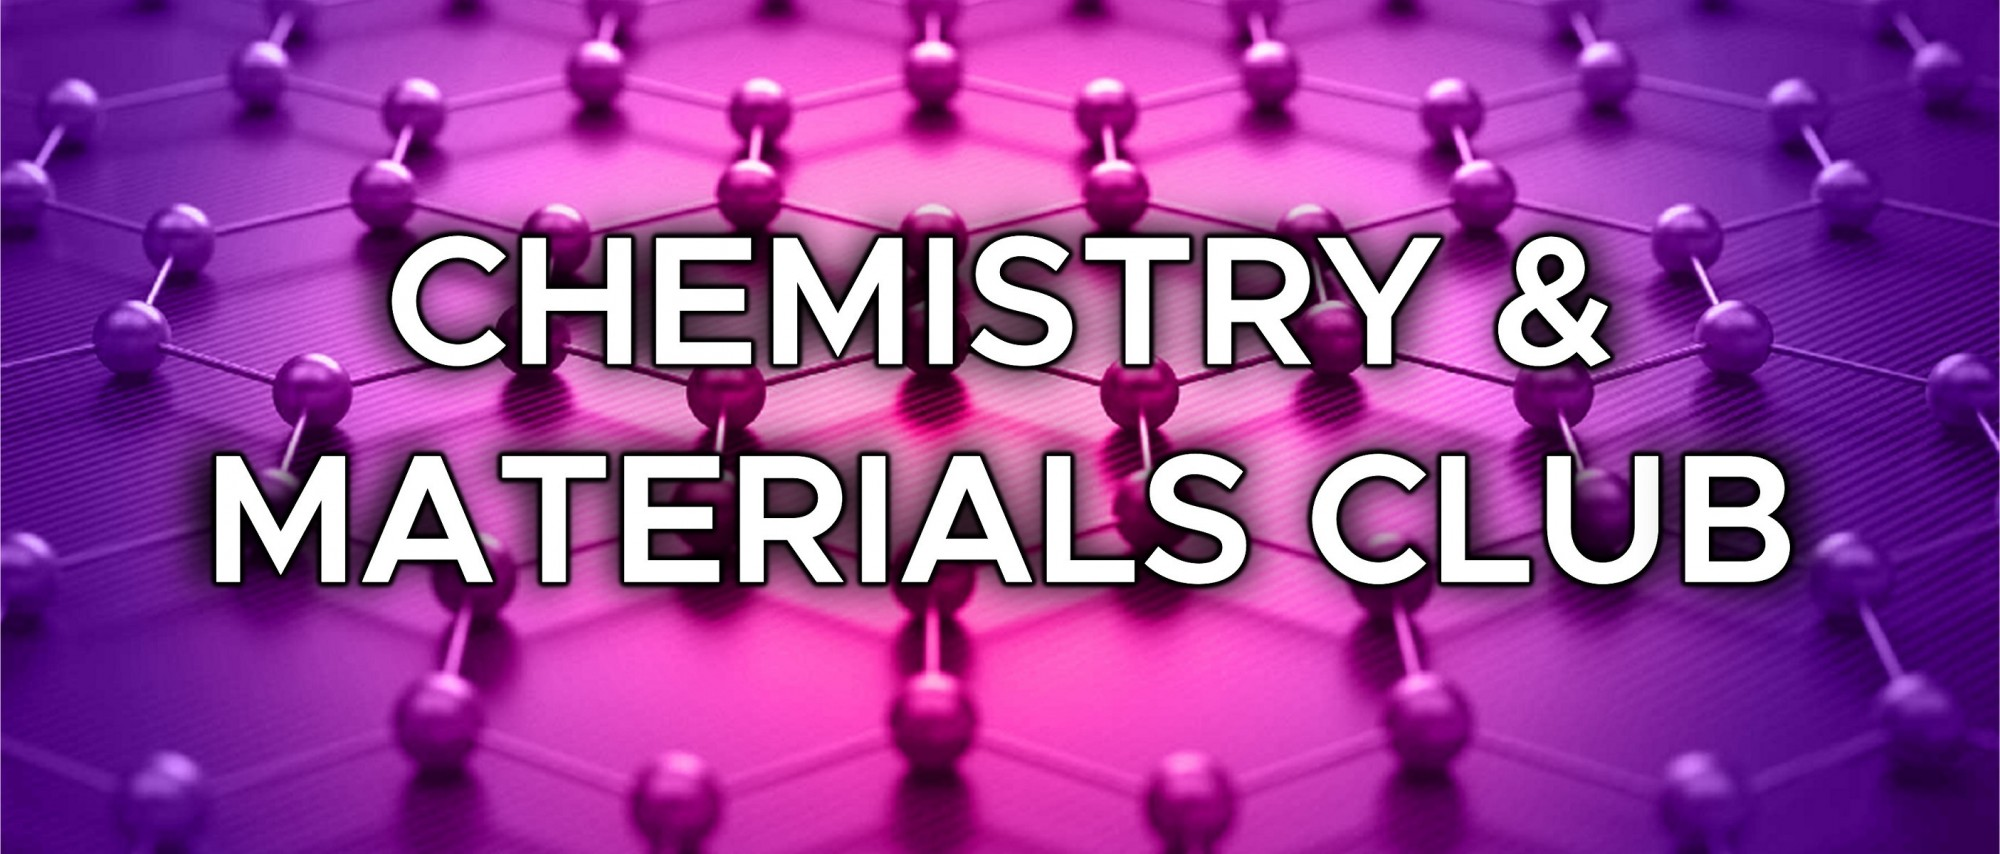 Chemistry  Materials Club Logo.jpg